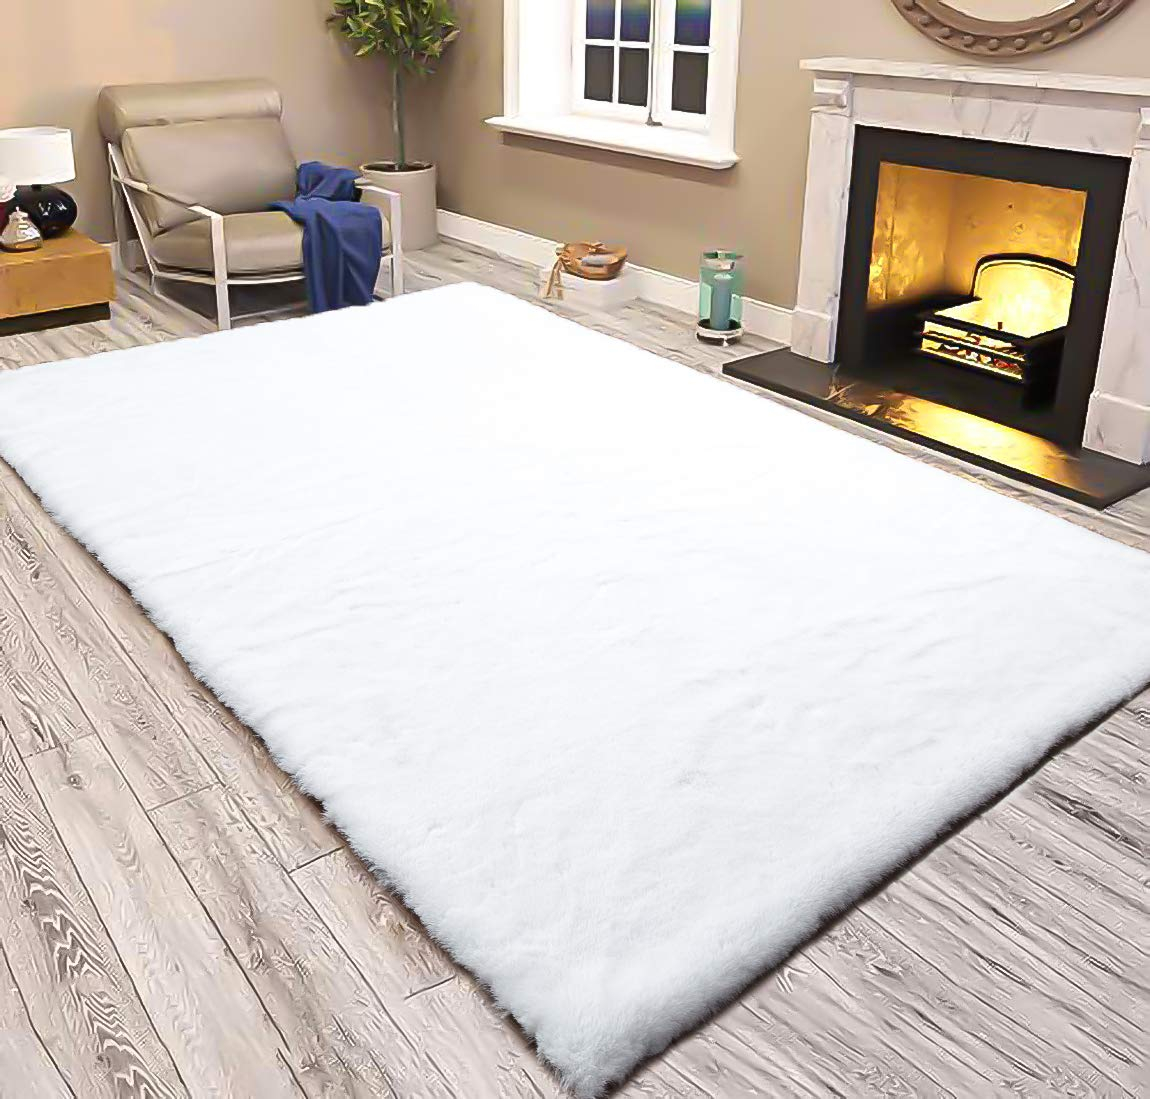 LOCHAS Ultra Soft Faux Fur Rugs for Bedroom Fluffy Rug 4 x 6 Feet, Shaggy Bedside Rugs Living Room Carpets for Kids Girls Floor Mat, Machine Washable, White